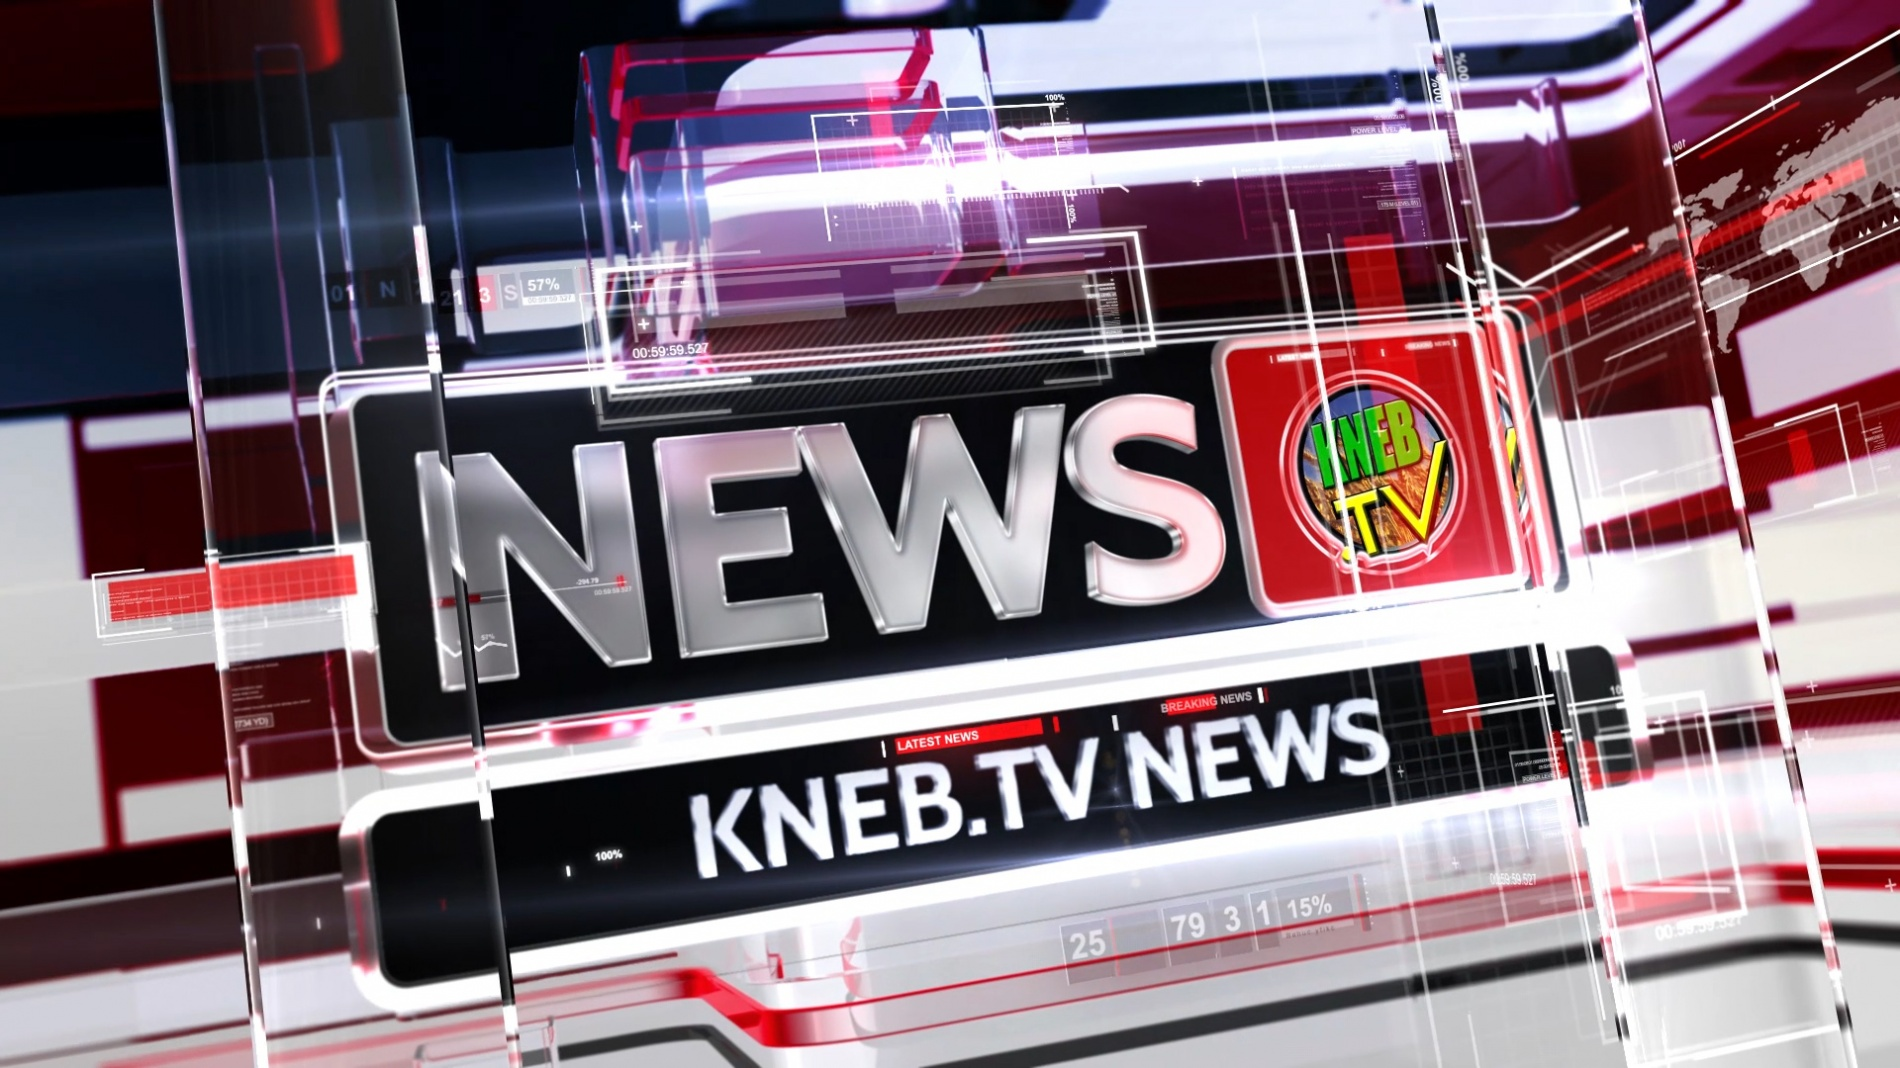 KNEB tv News: August 9, 2019 | KNEB